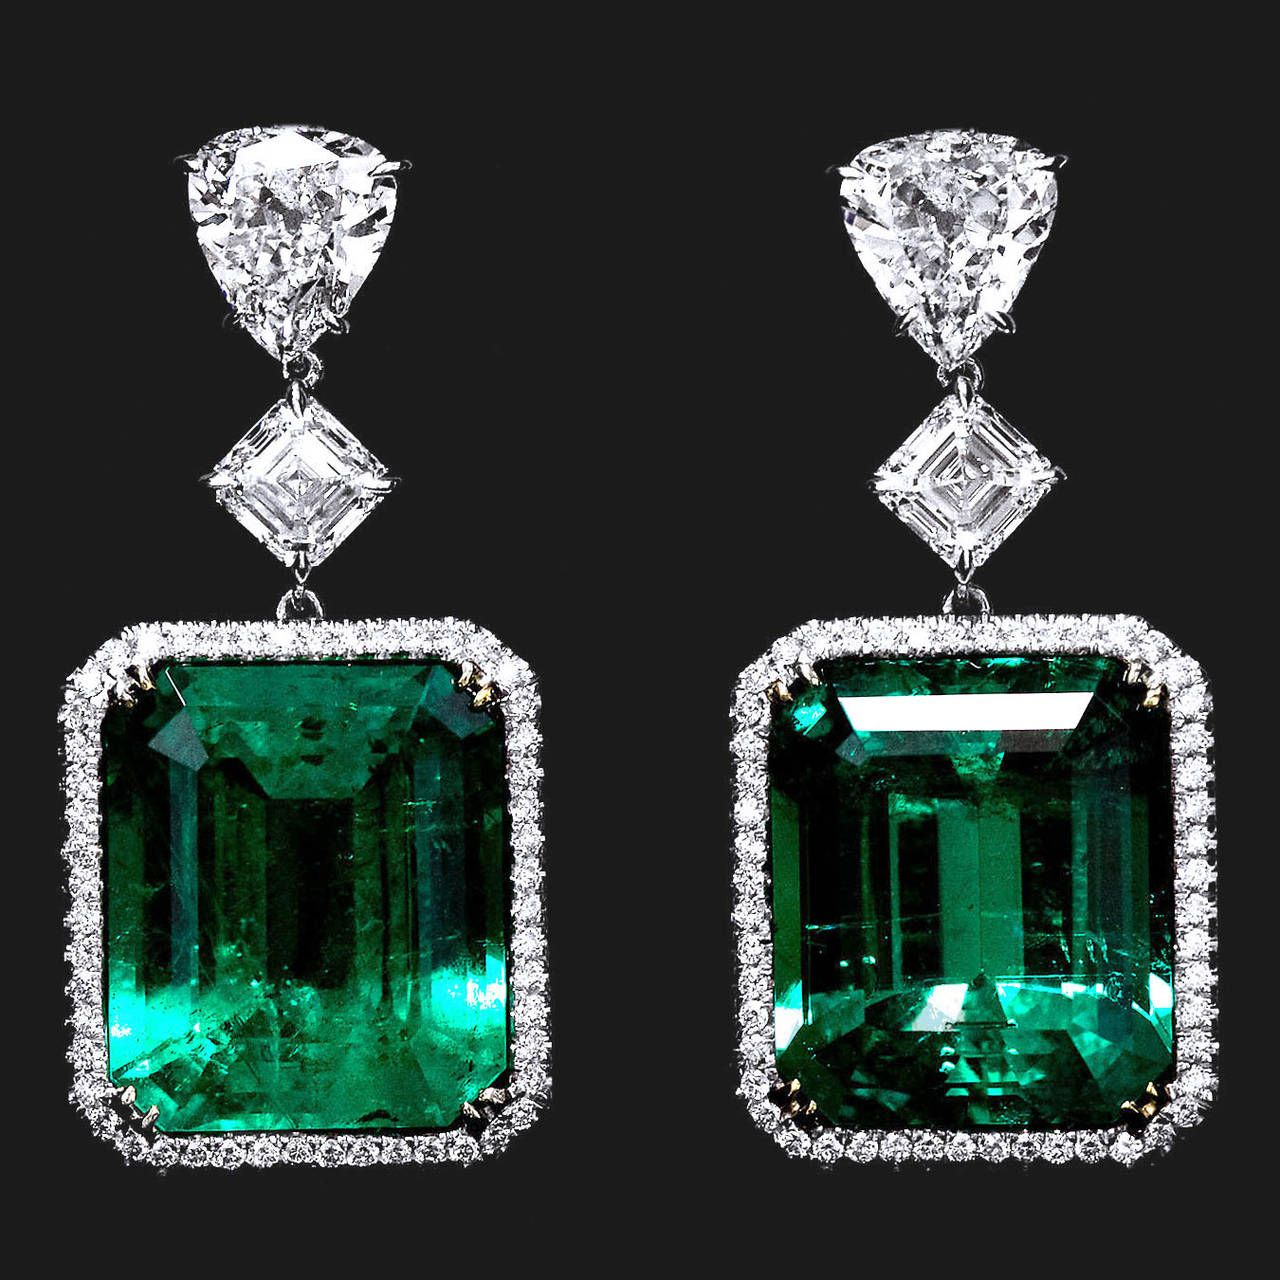 Important 45 Carat Colombian Emerald Earrings | From a unique collection of vintage drop earrings at https://www.1stdibs.com/jewelry/earrings/drop-earrings/